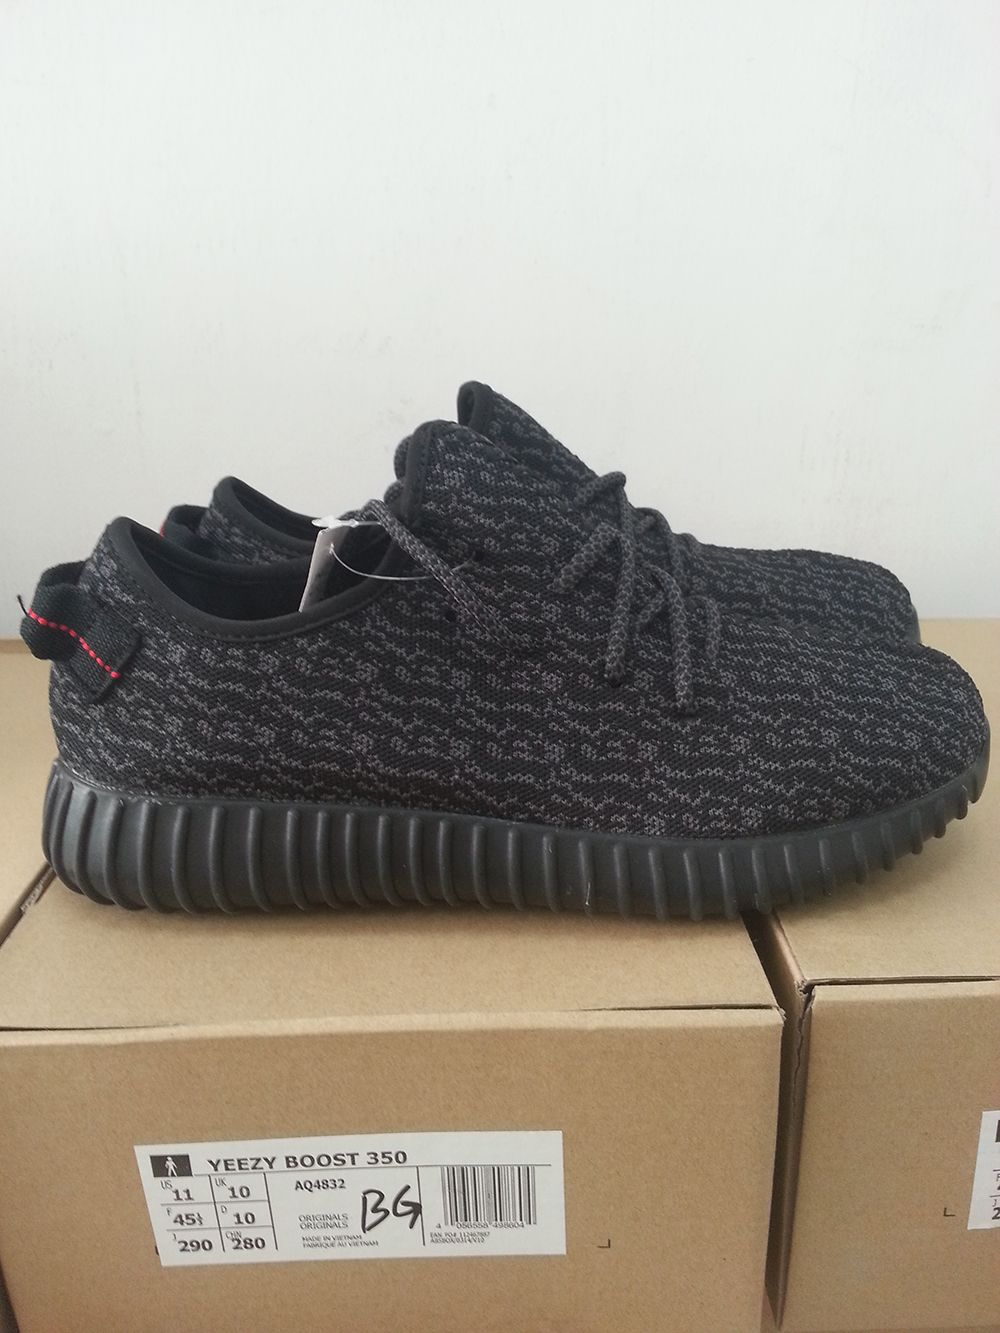 yeezy boost 350 private black on sale only 109 dollars with free shipping  to worldwide